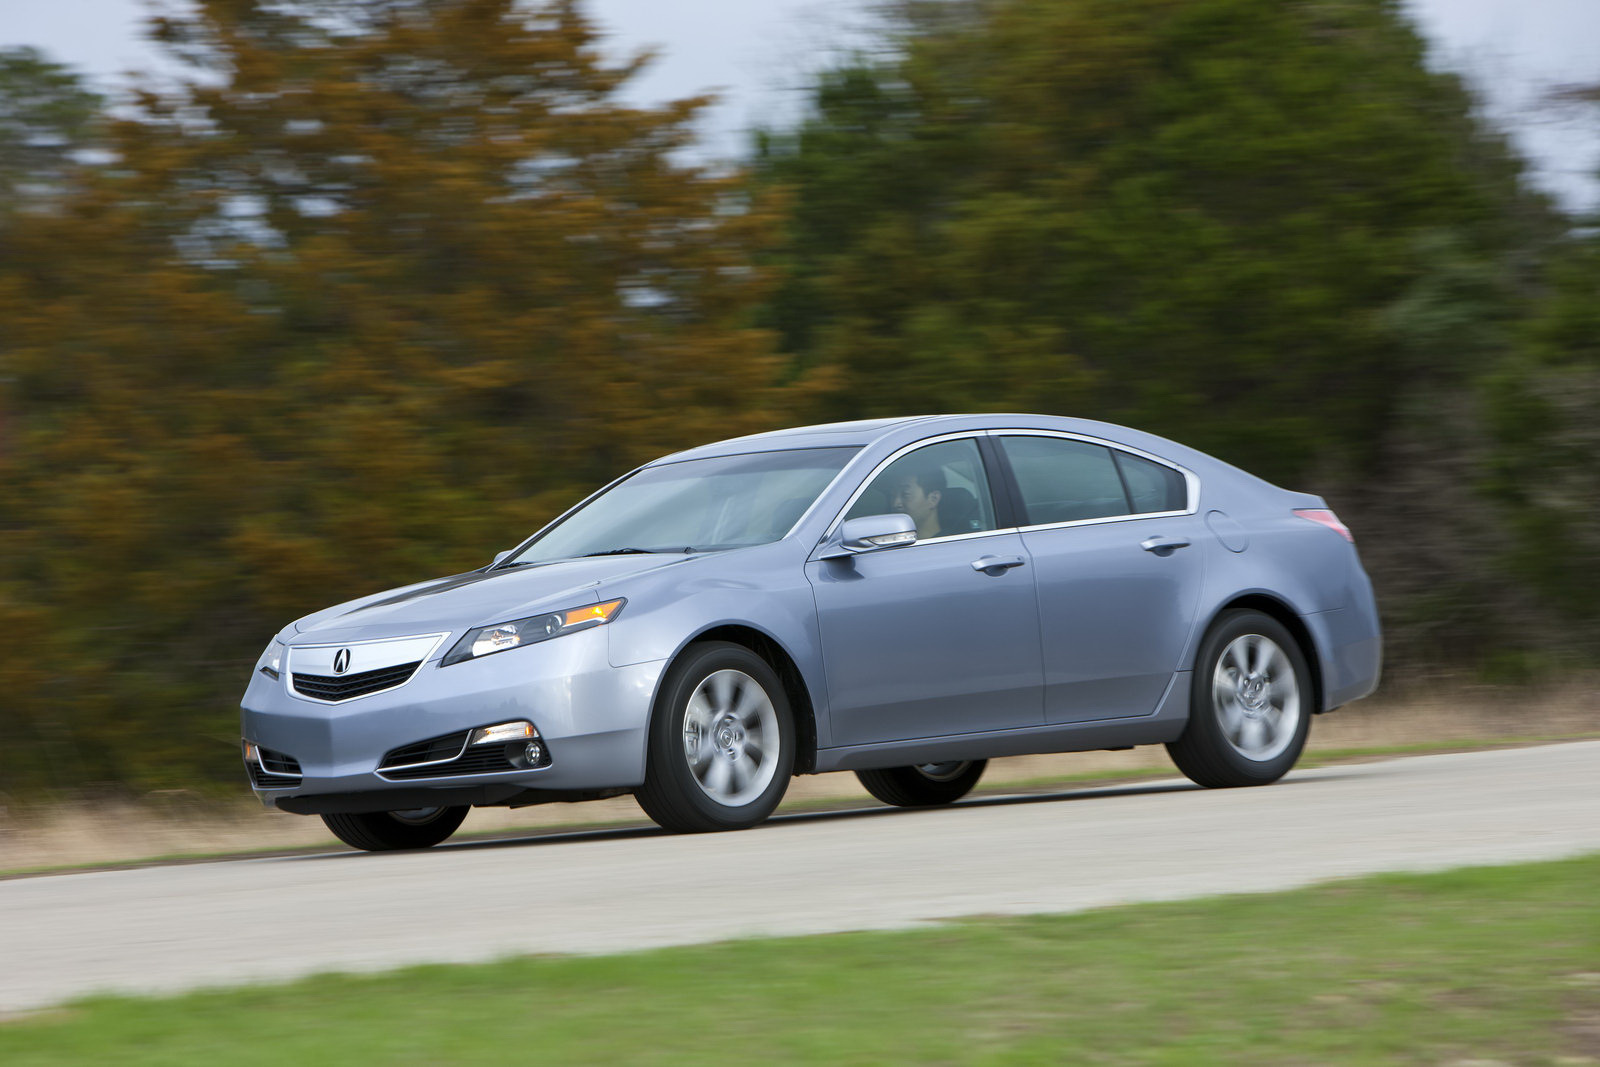 2004 acura tl reviews and rating motor trend autos post. Black Bedroom Furniture Sets. Home Design Ideas